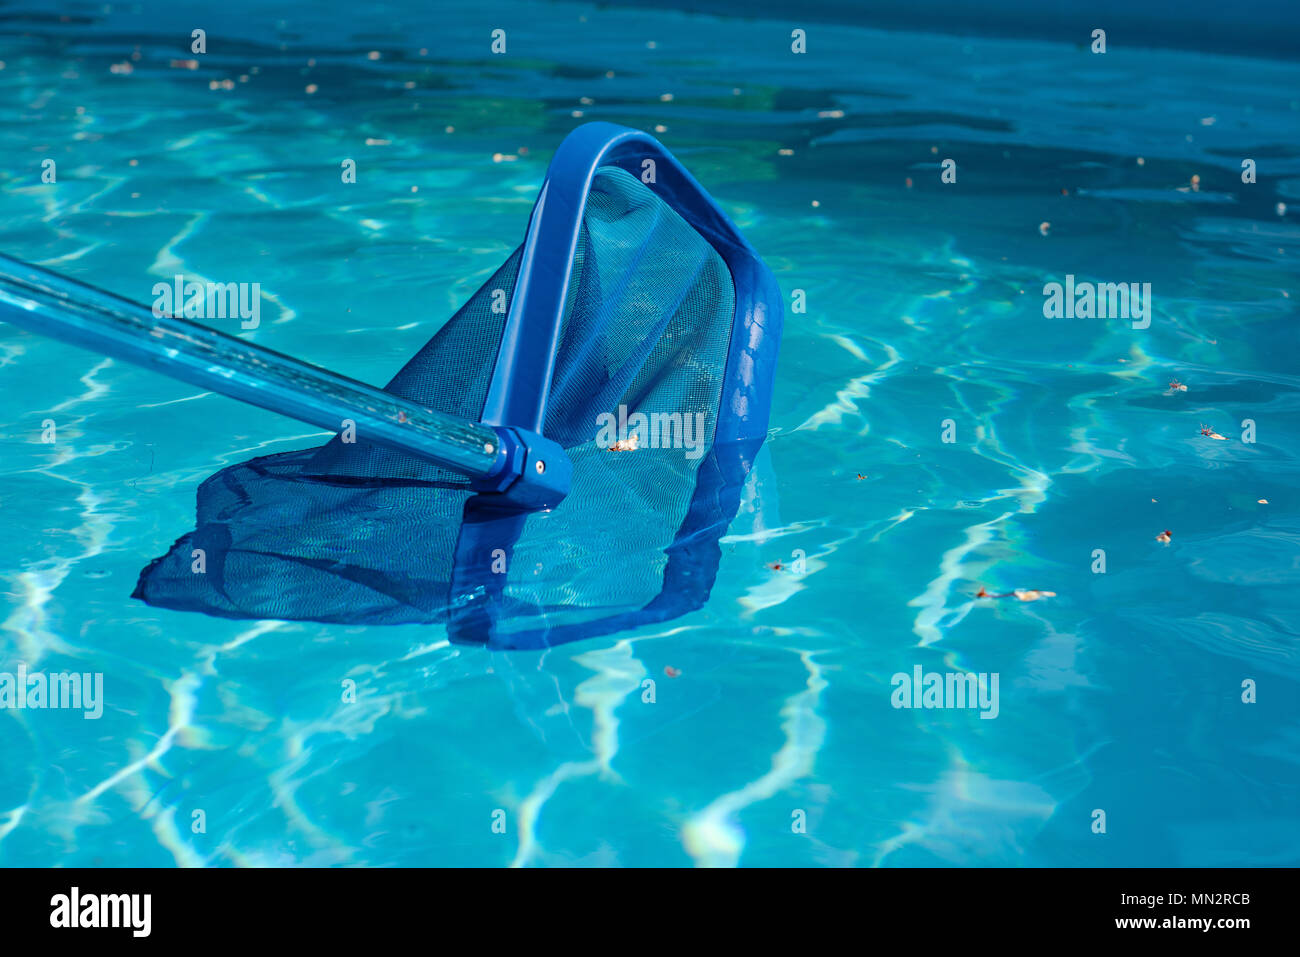 Swimming pool with blue ripple water during clean maintenance. Pool ...